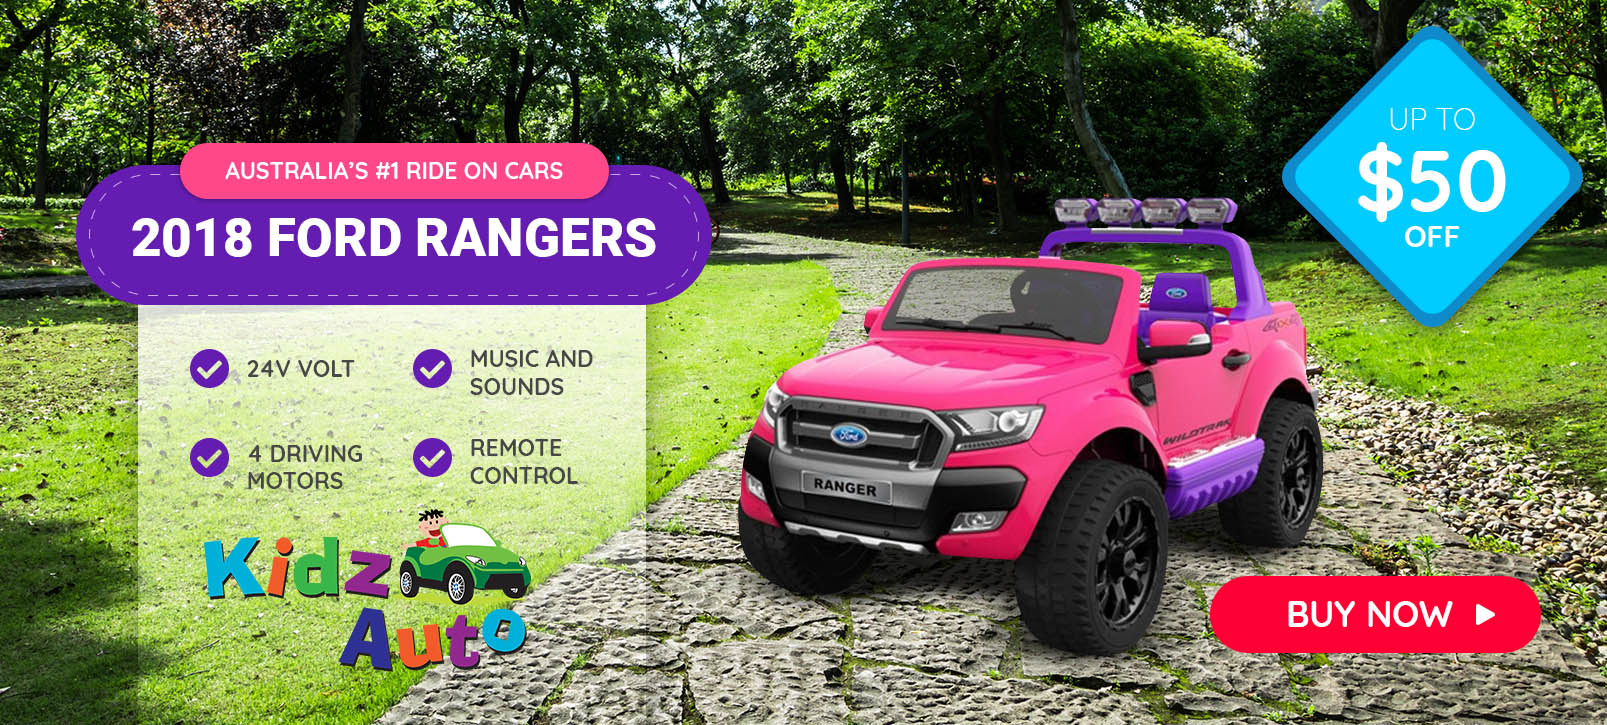 2018 Licensed Ford Rangers Ride on Cars